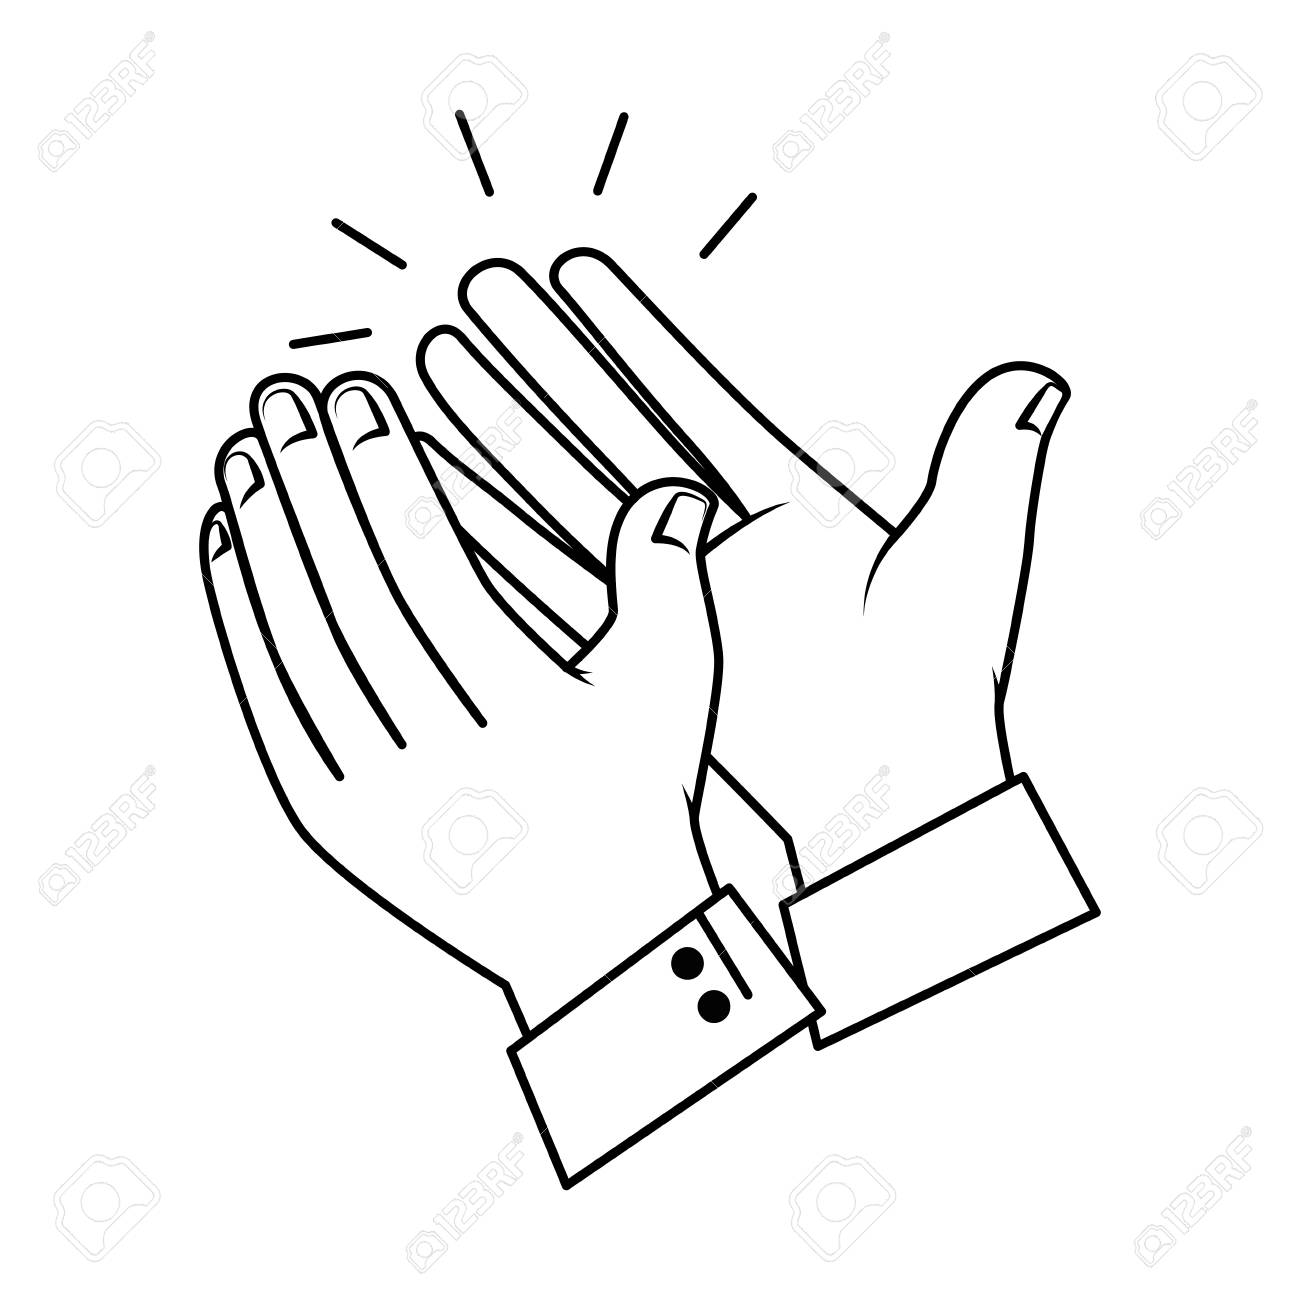 hands applauding isolated icon vector illustration design - 90474704